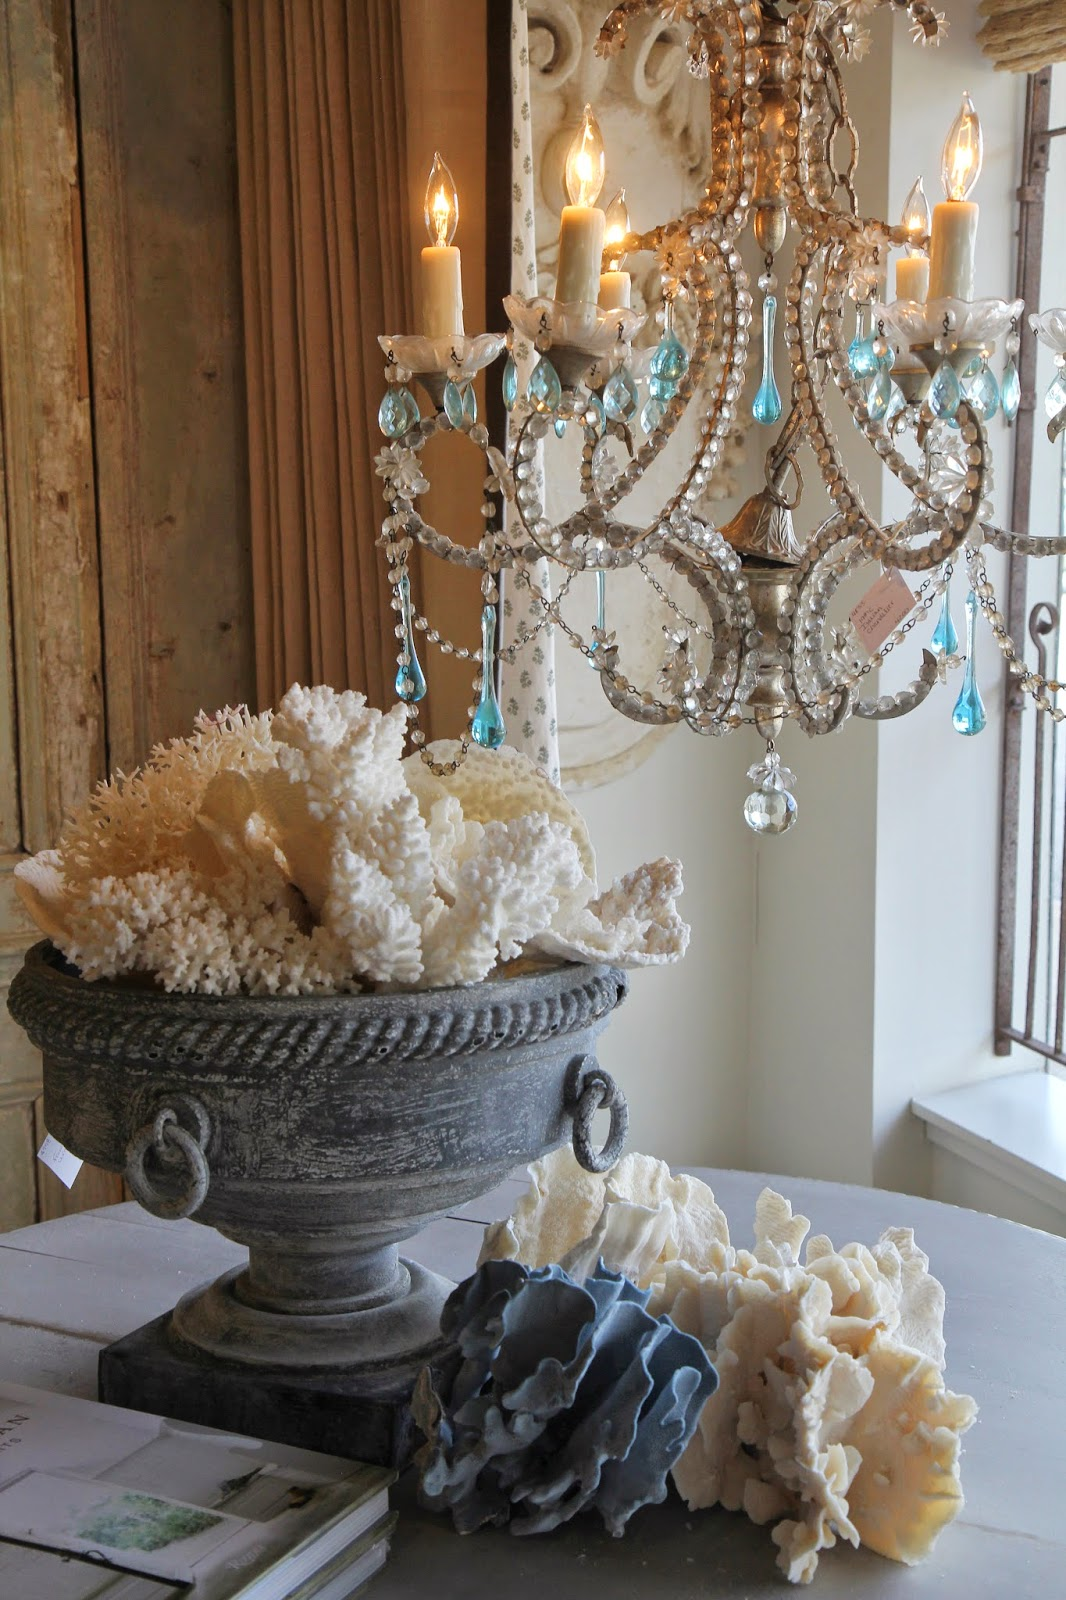 Antique blue raindrop chandelier; Inspirational Chandeliers and Sconces; Nora's Nest